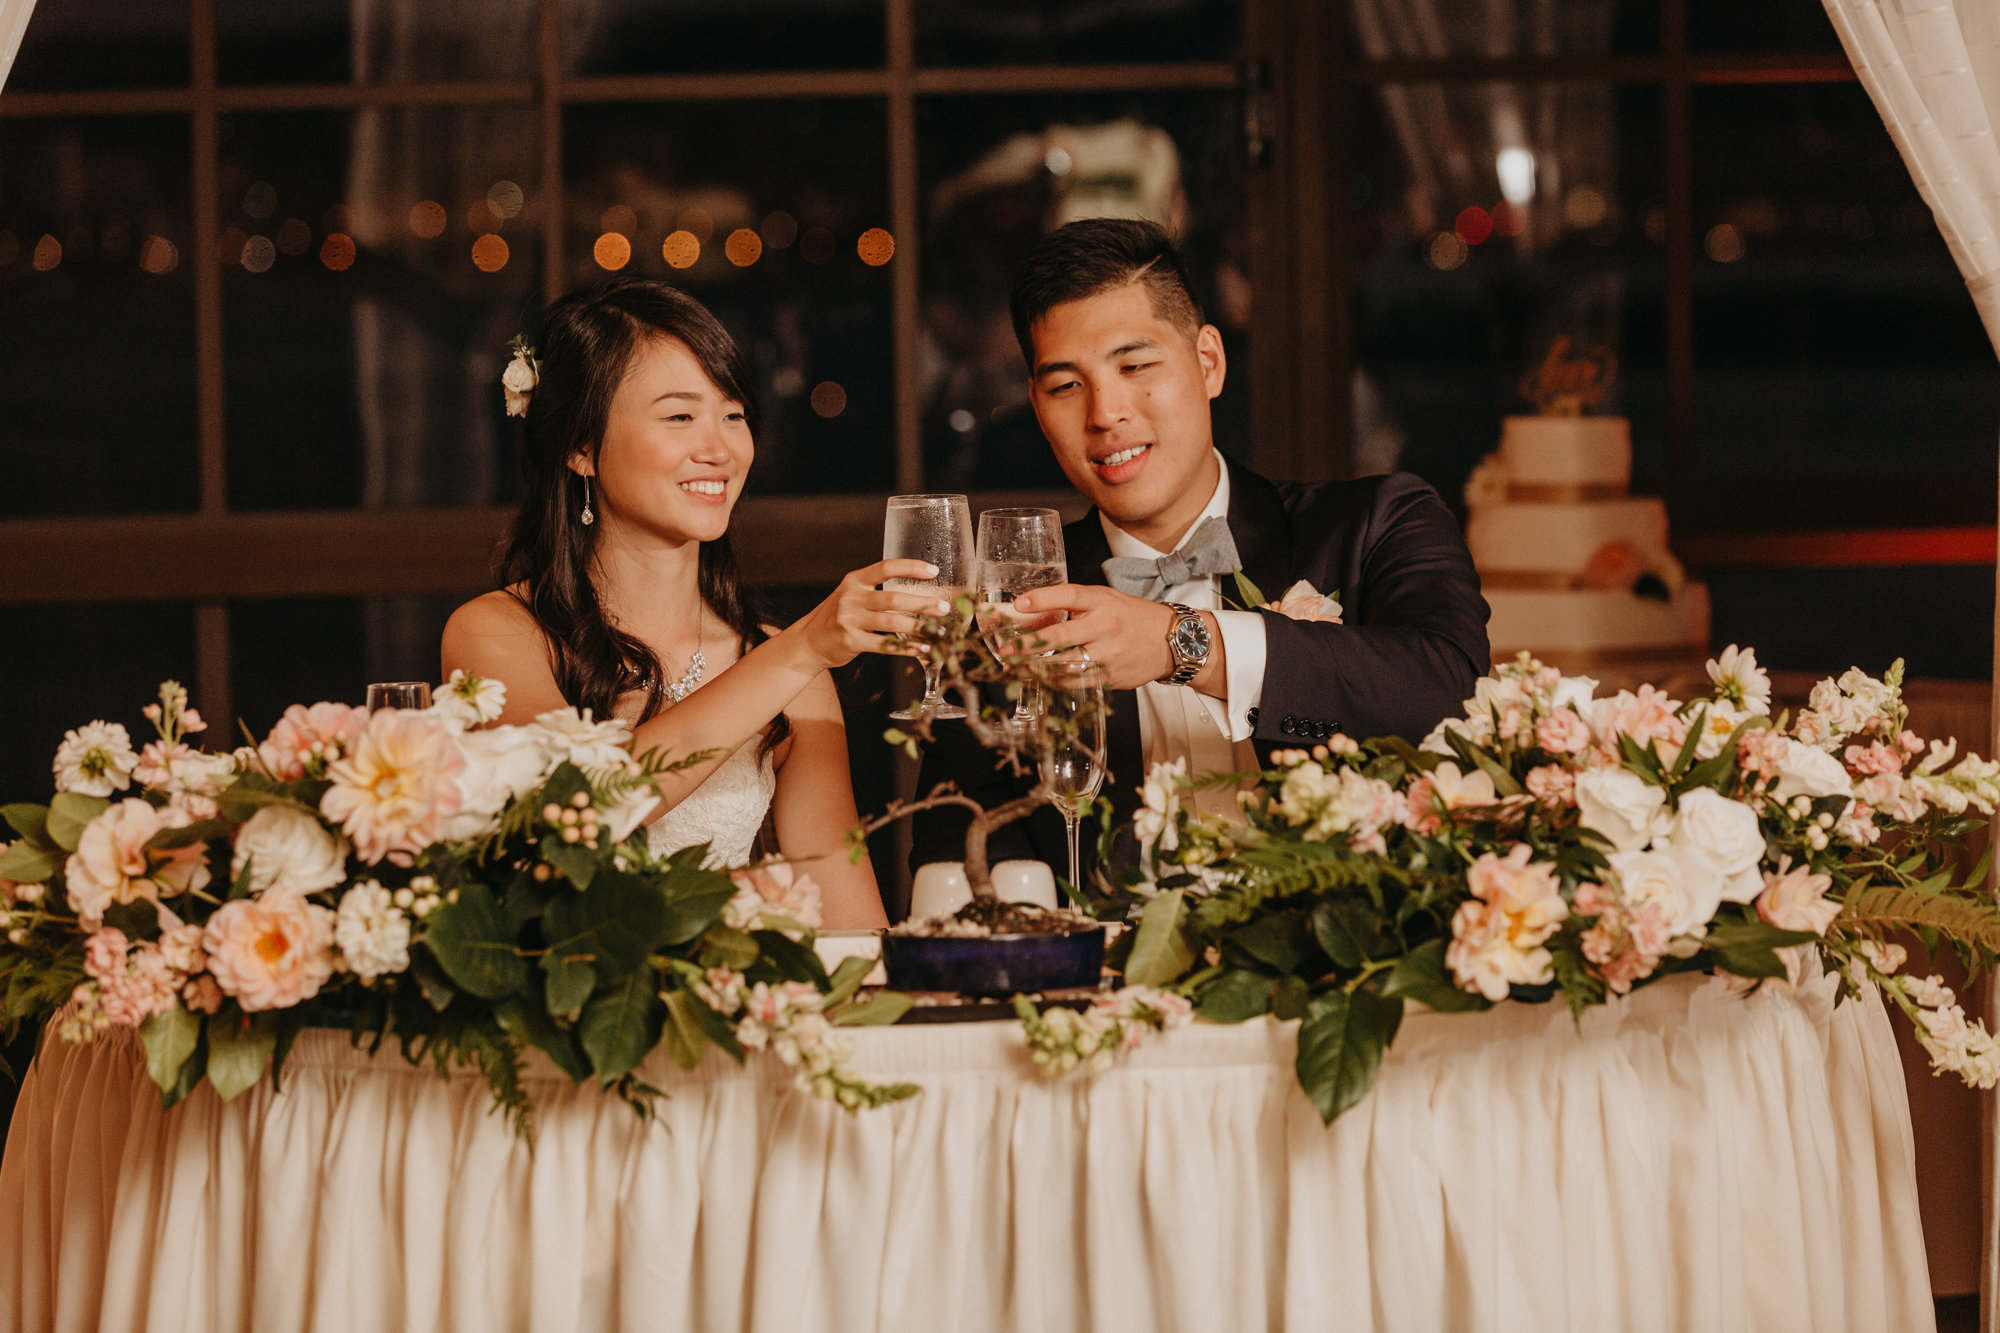 Taylor and Timothy-sweetheart table.jpg